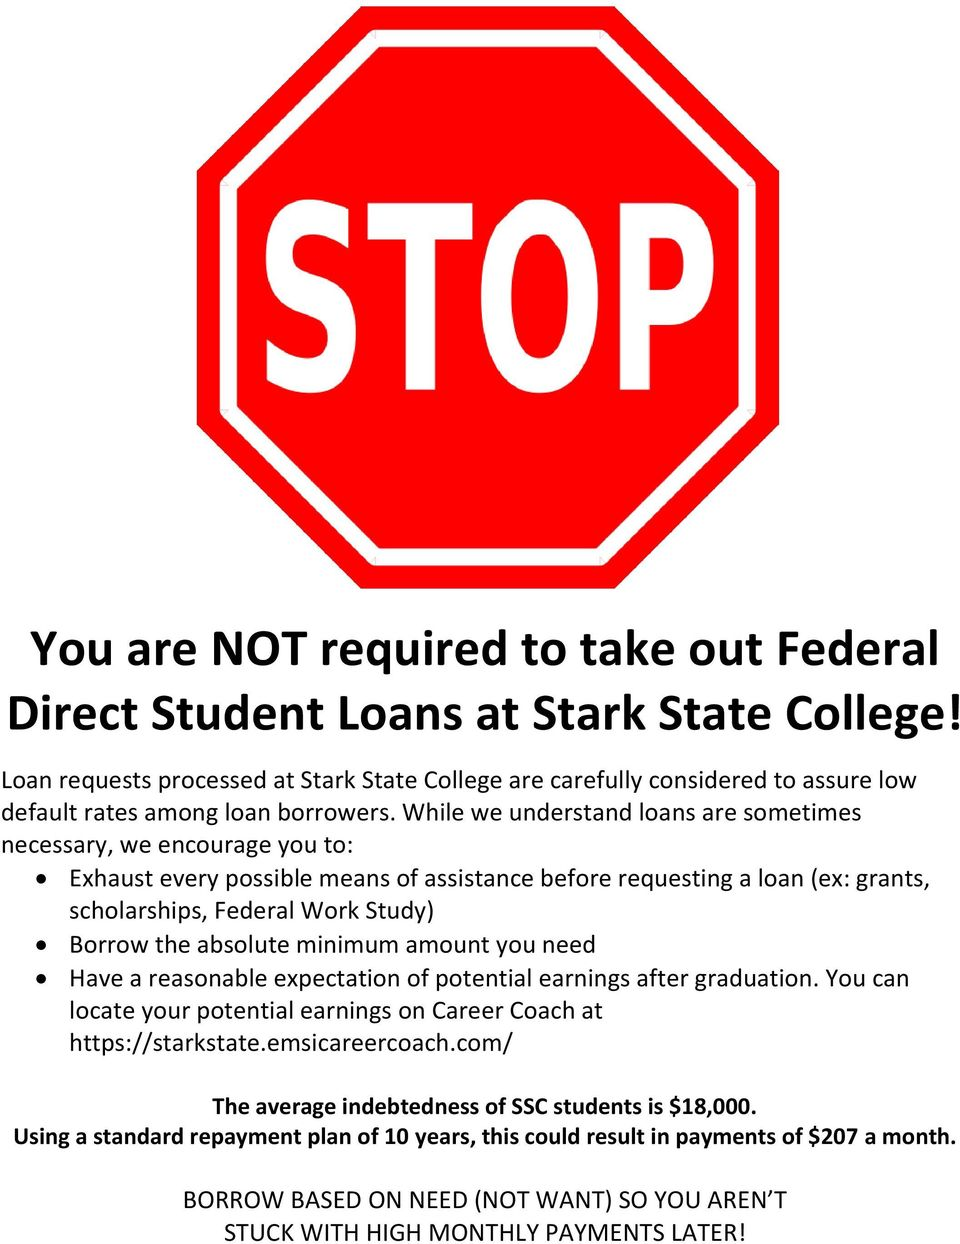 While we understand loans are sometimes necessary, we encourage you to: Exhaust every possible means of assistance before requesting a loan (ex: grants, scholarships, Federal Work Study) Borrow the